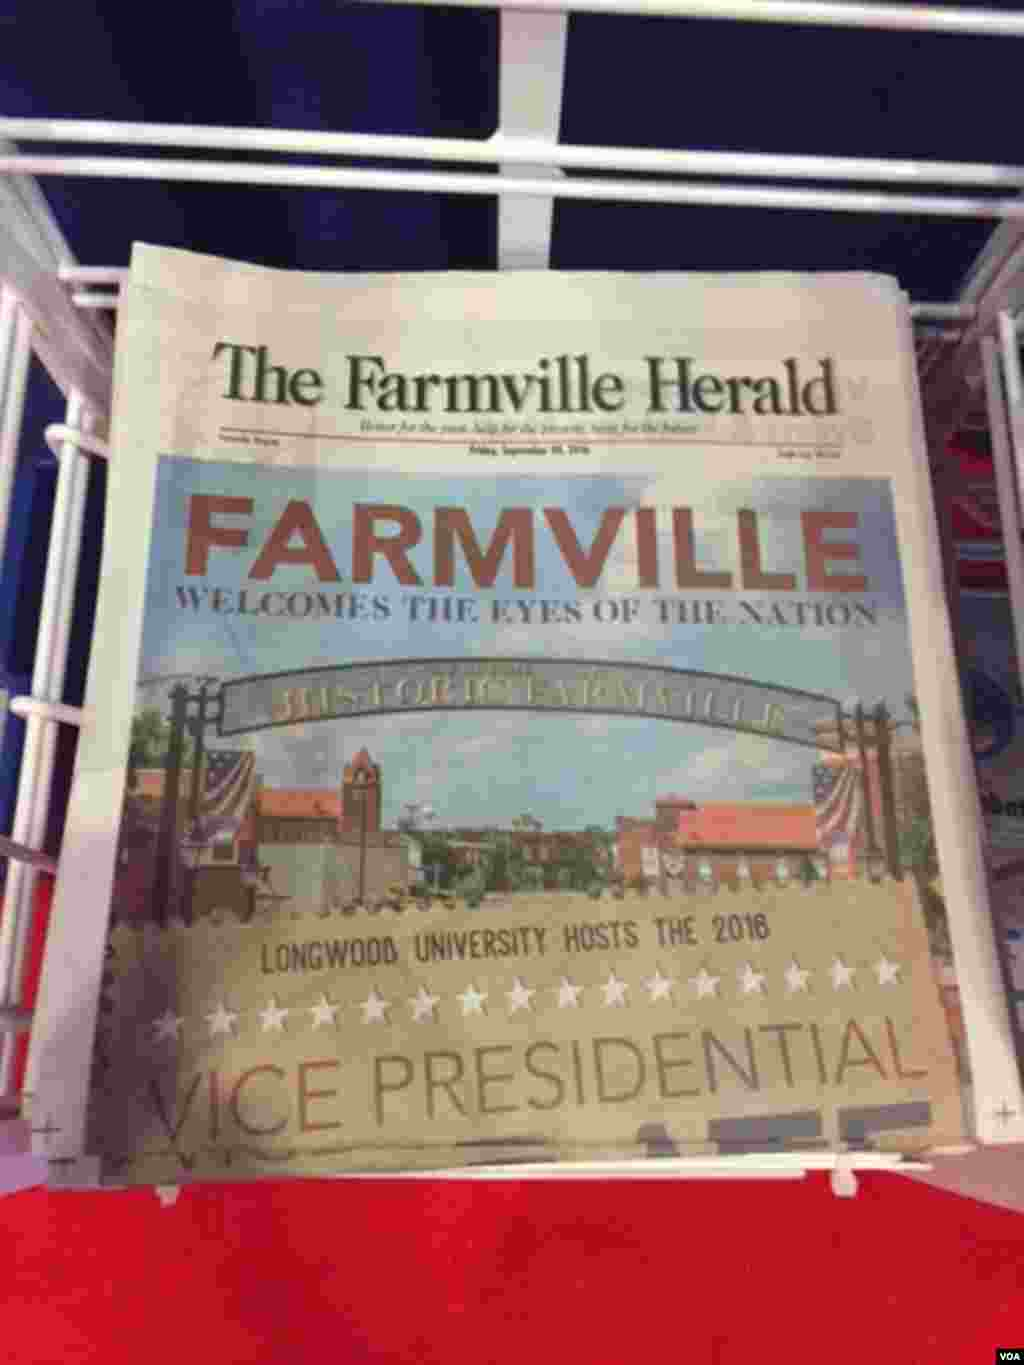 The vice presidential debate is the only story on the front page of the local newspaper in Farmville, Virginia. (K.Gypson/VOA)